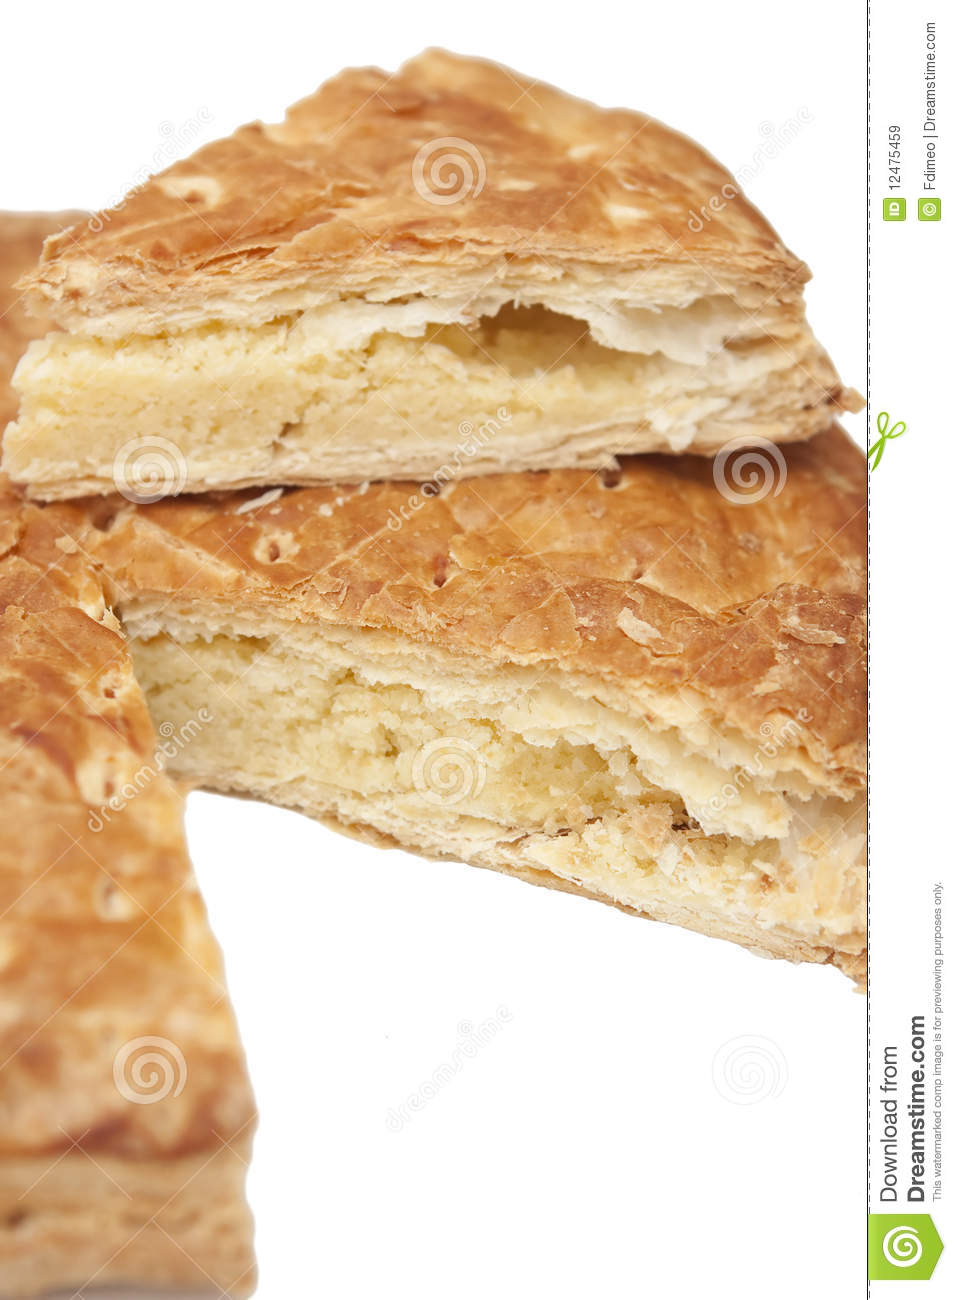 Epiphany Cake Royalty Free Stock Images - Image: 12475459